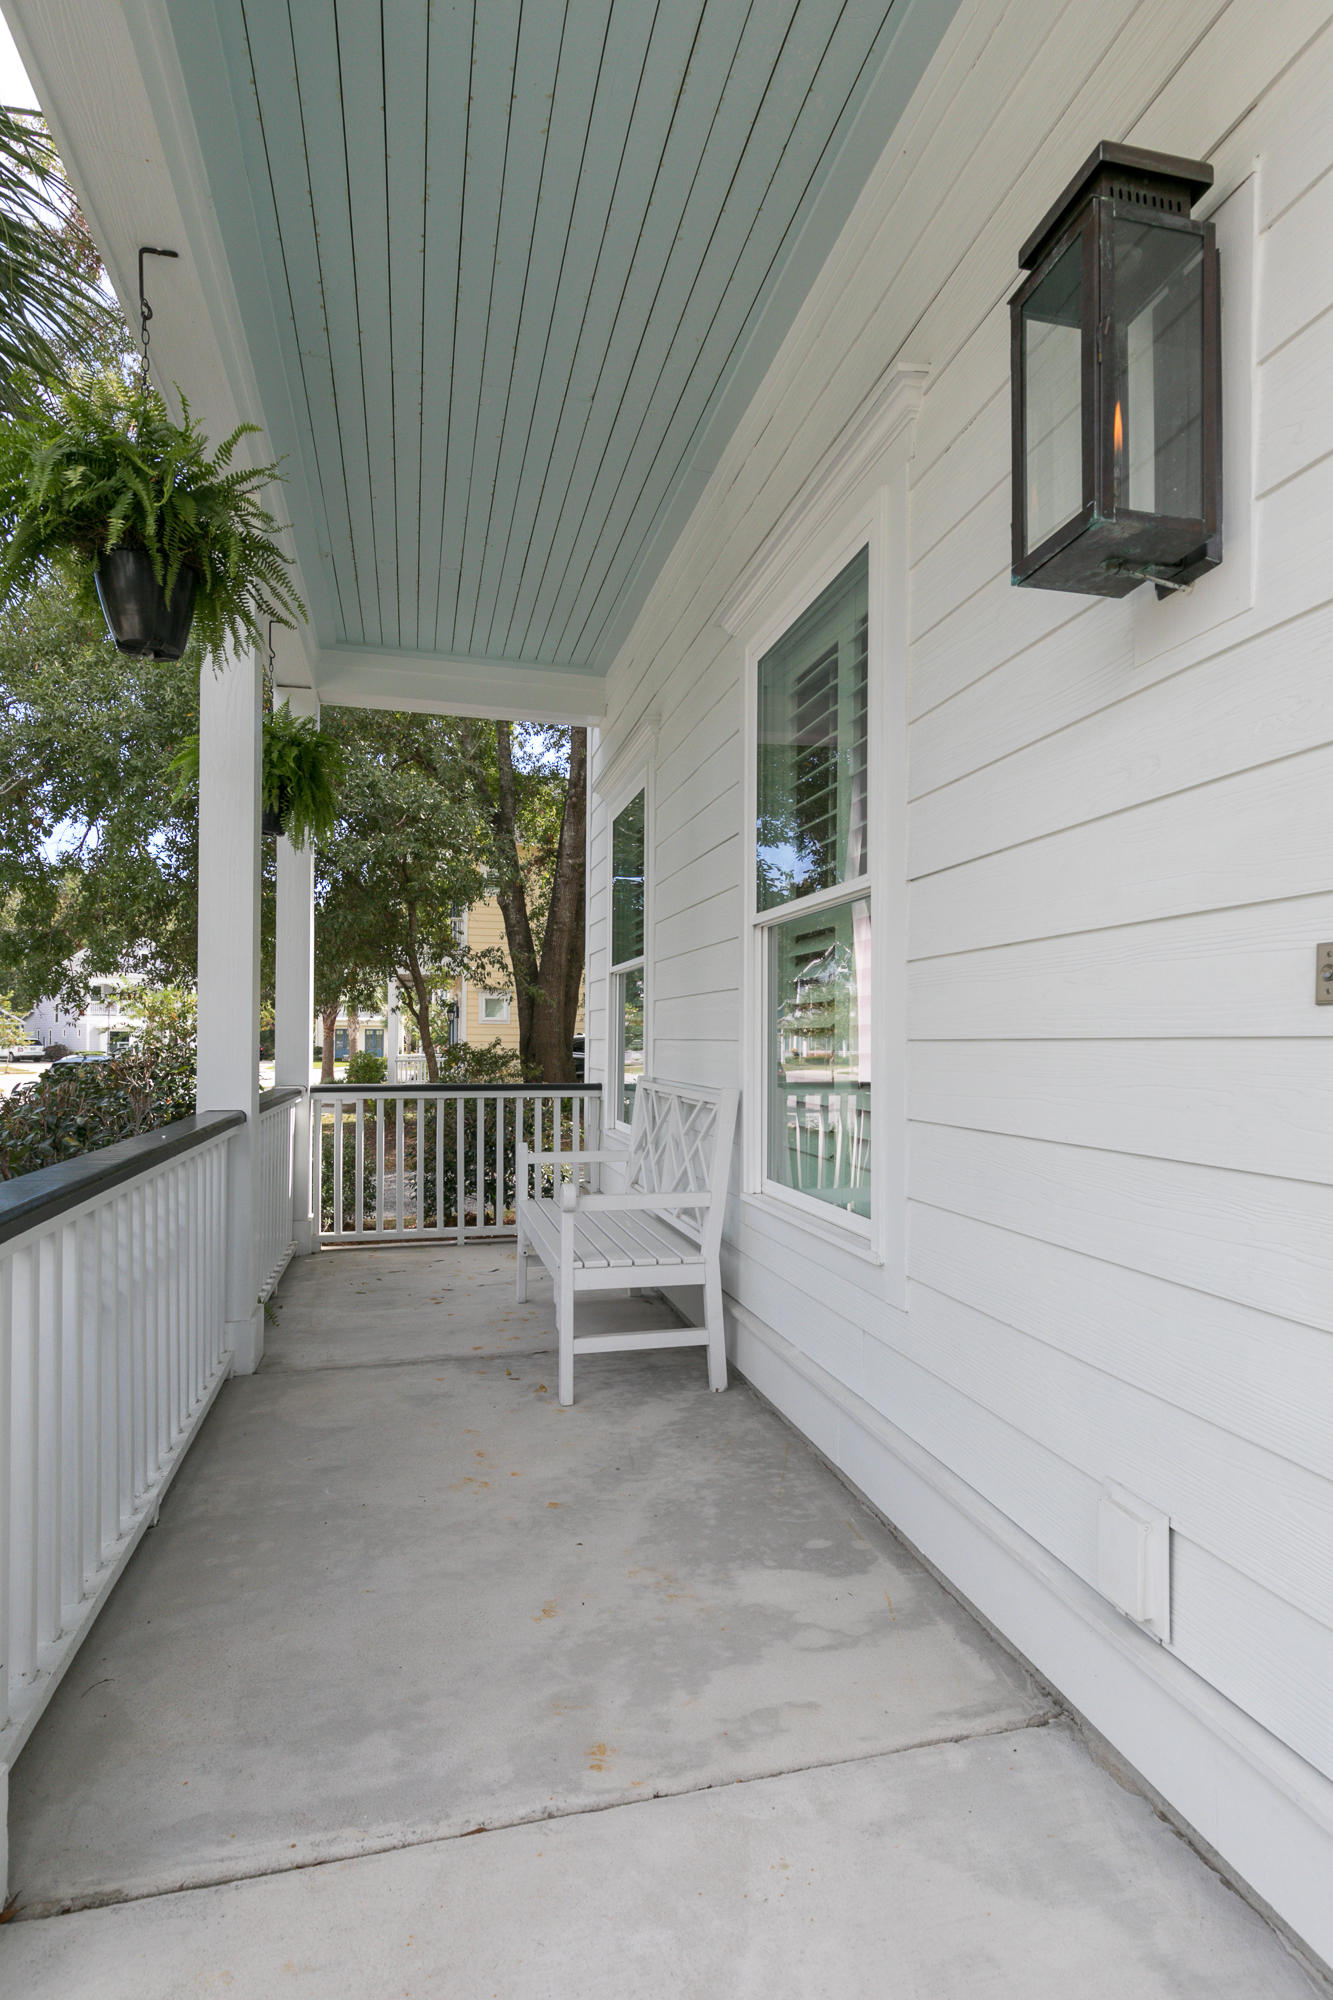 Wexford Park Homes For Sale - 1133 Wexford, Mount Pleasant, SC - 16